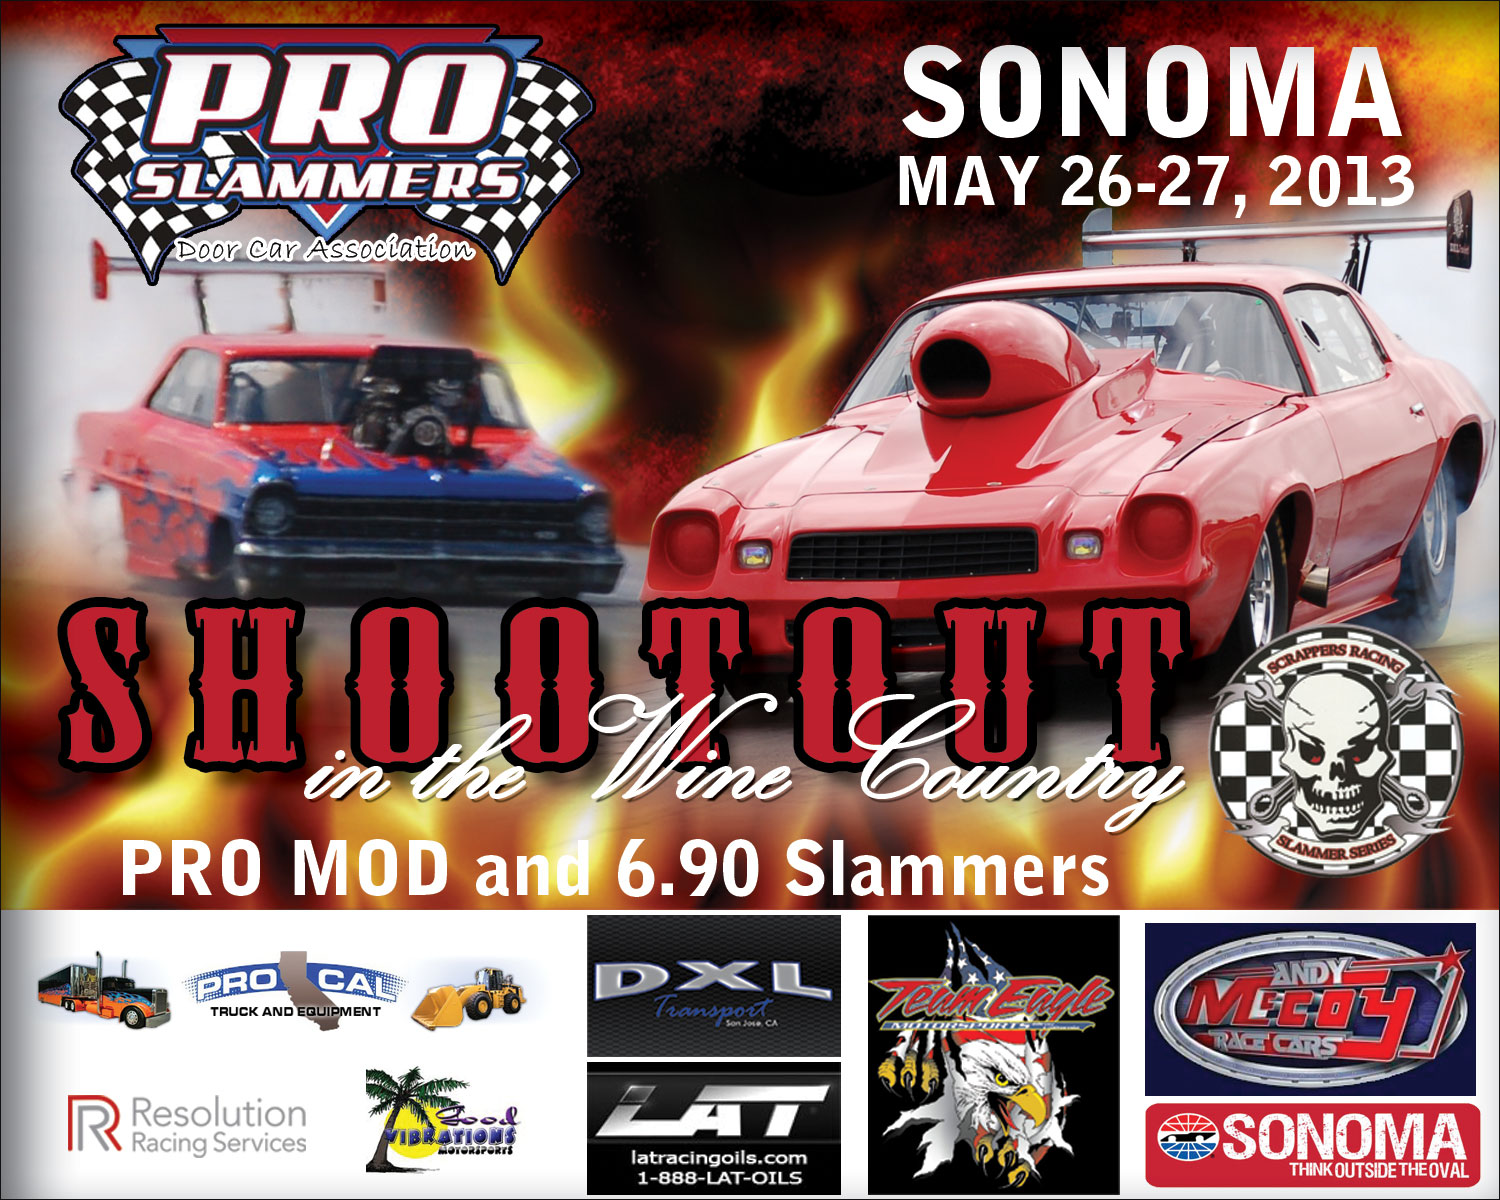 feature some fast door slammers in both Pro Mod and 6.90 Slammers. Pro Mod points leader John Durden is coming off his second event win of the season and is ... & Pro Slammers u2013 DragStory.com